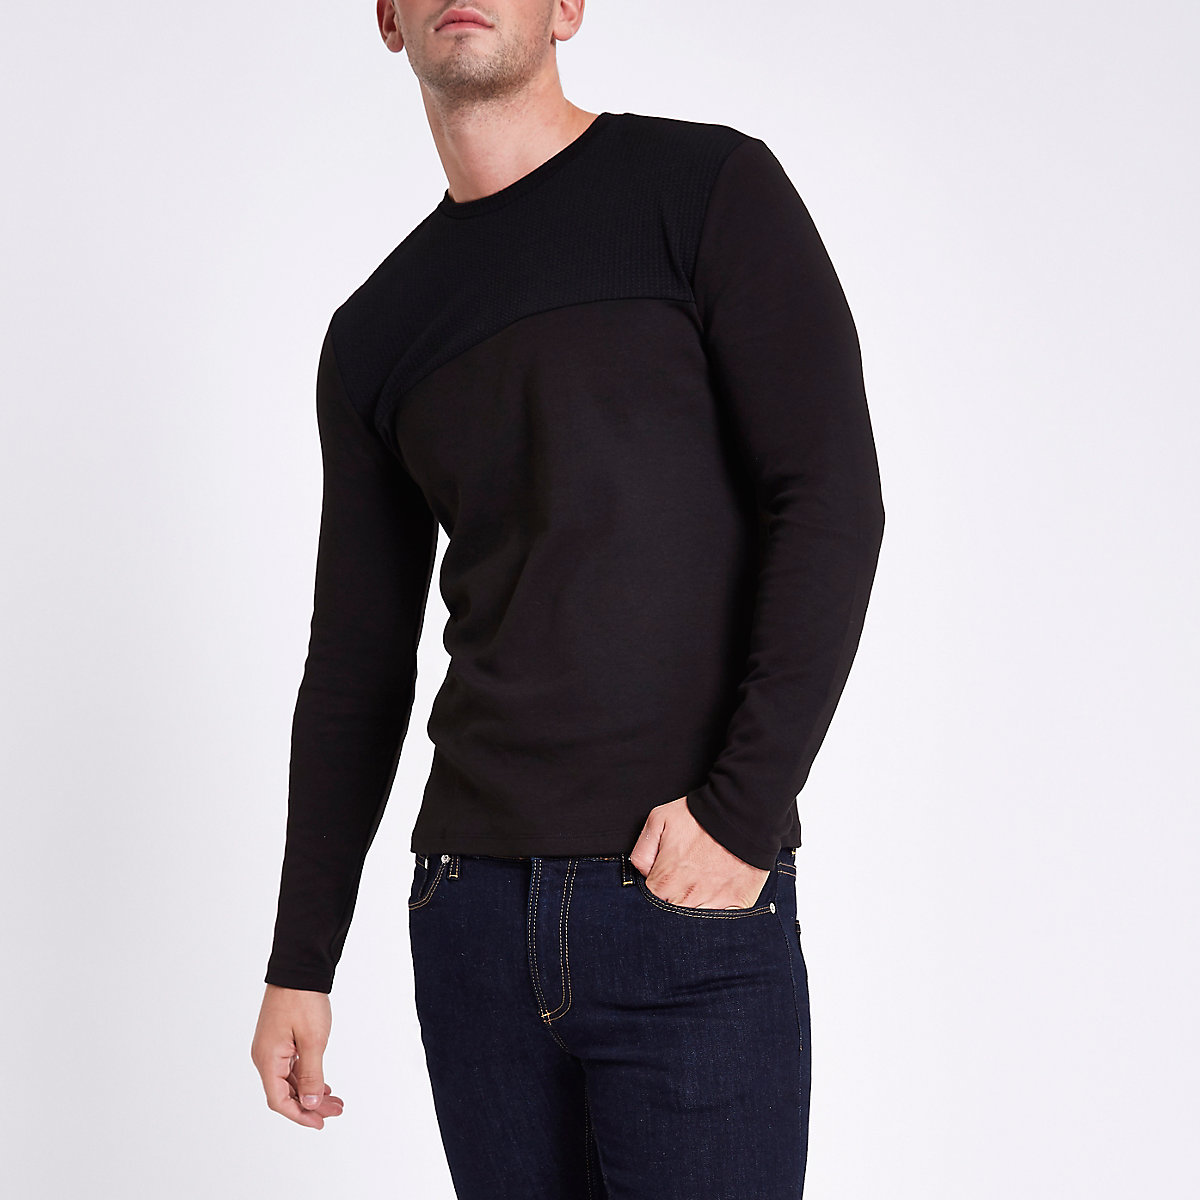 Black slim fit textured long sleeve t-shirt